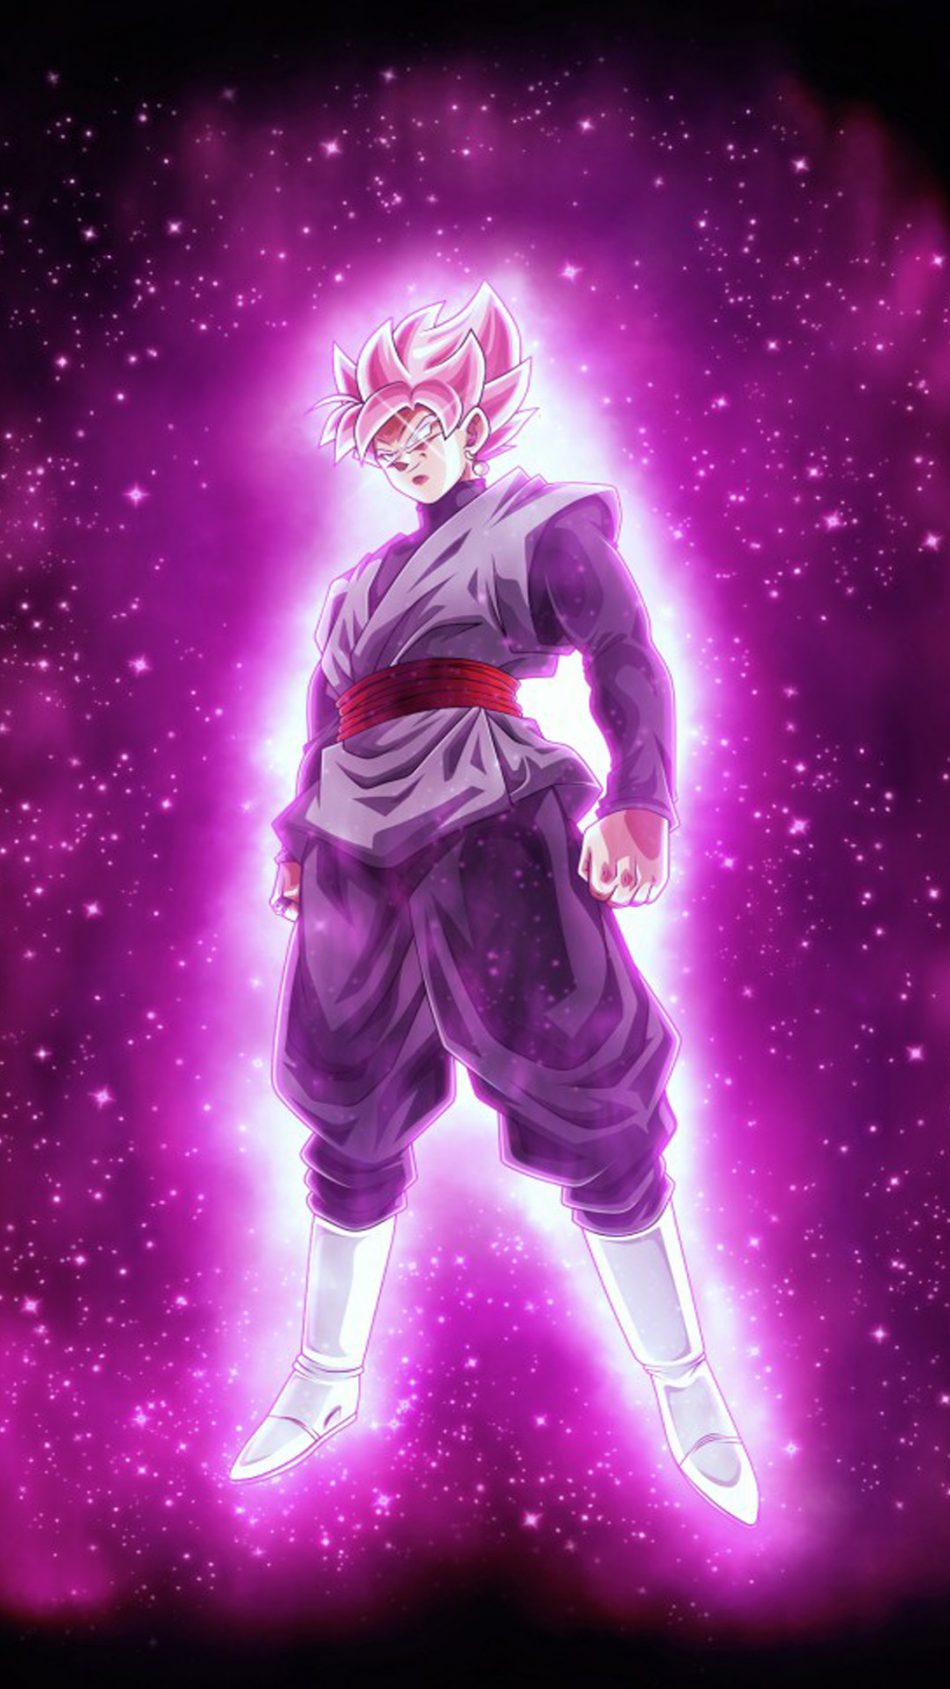 Super Saiyan Rose In Dragon Ball Super 4k Ultra Hd Mobile Wallpaper